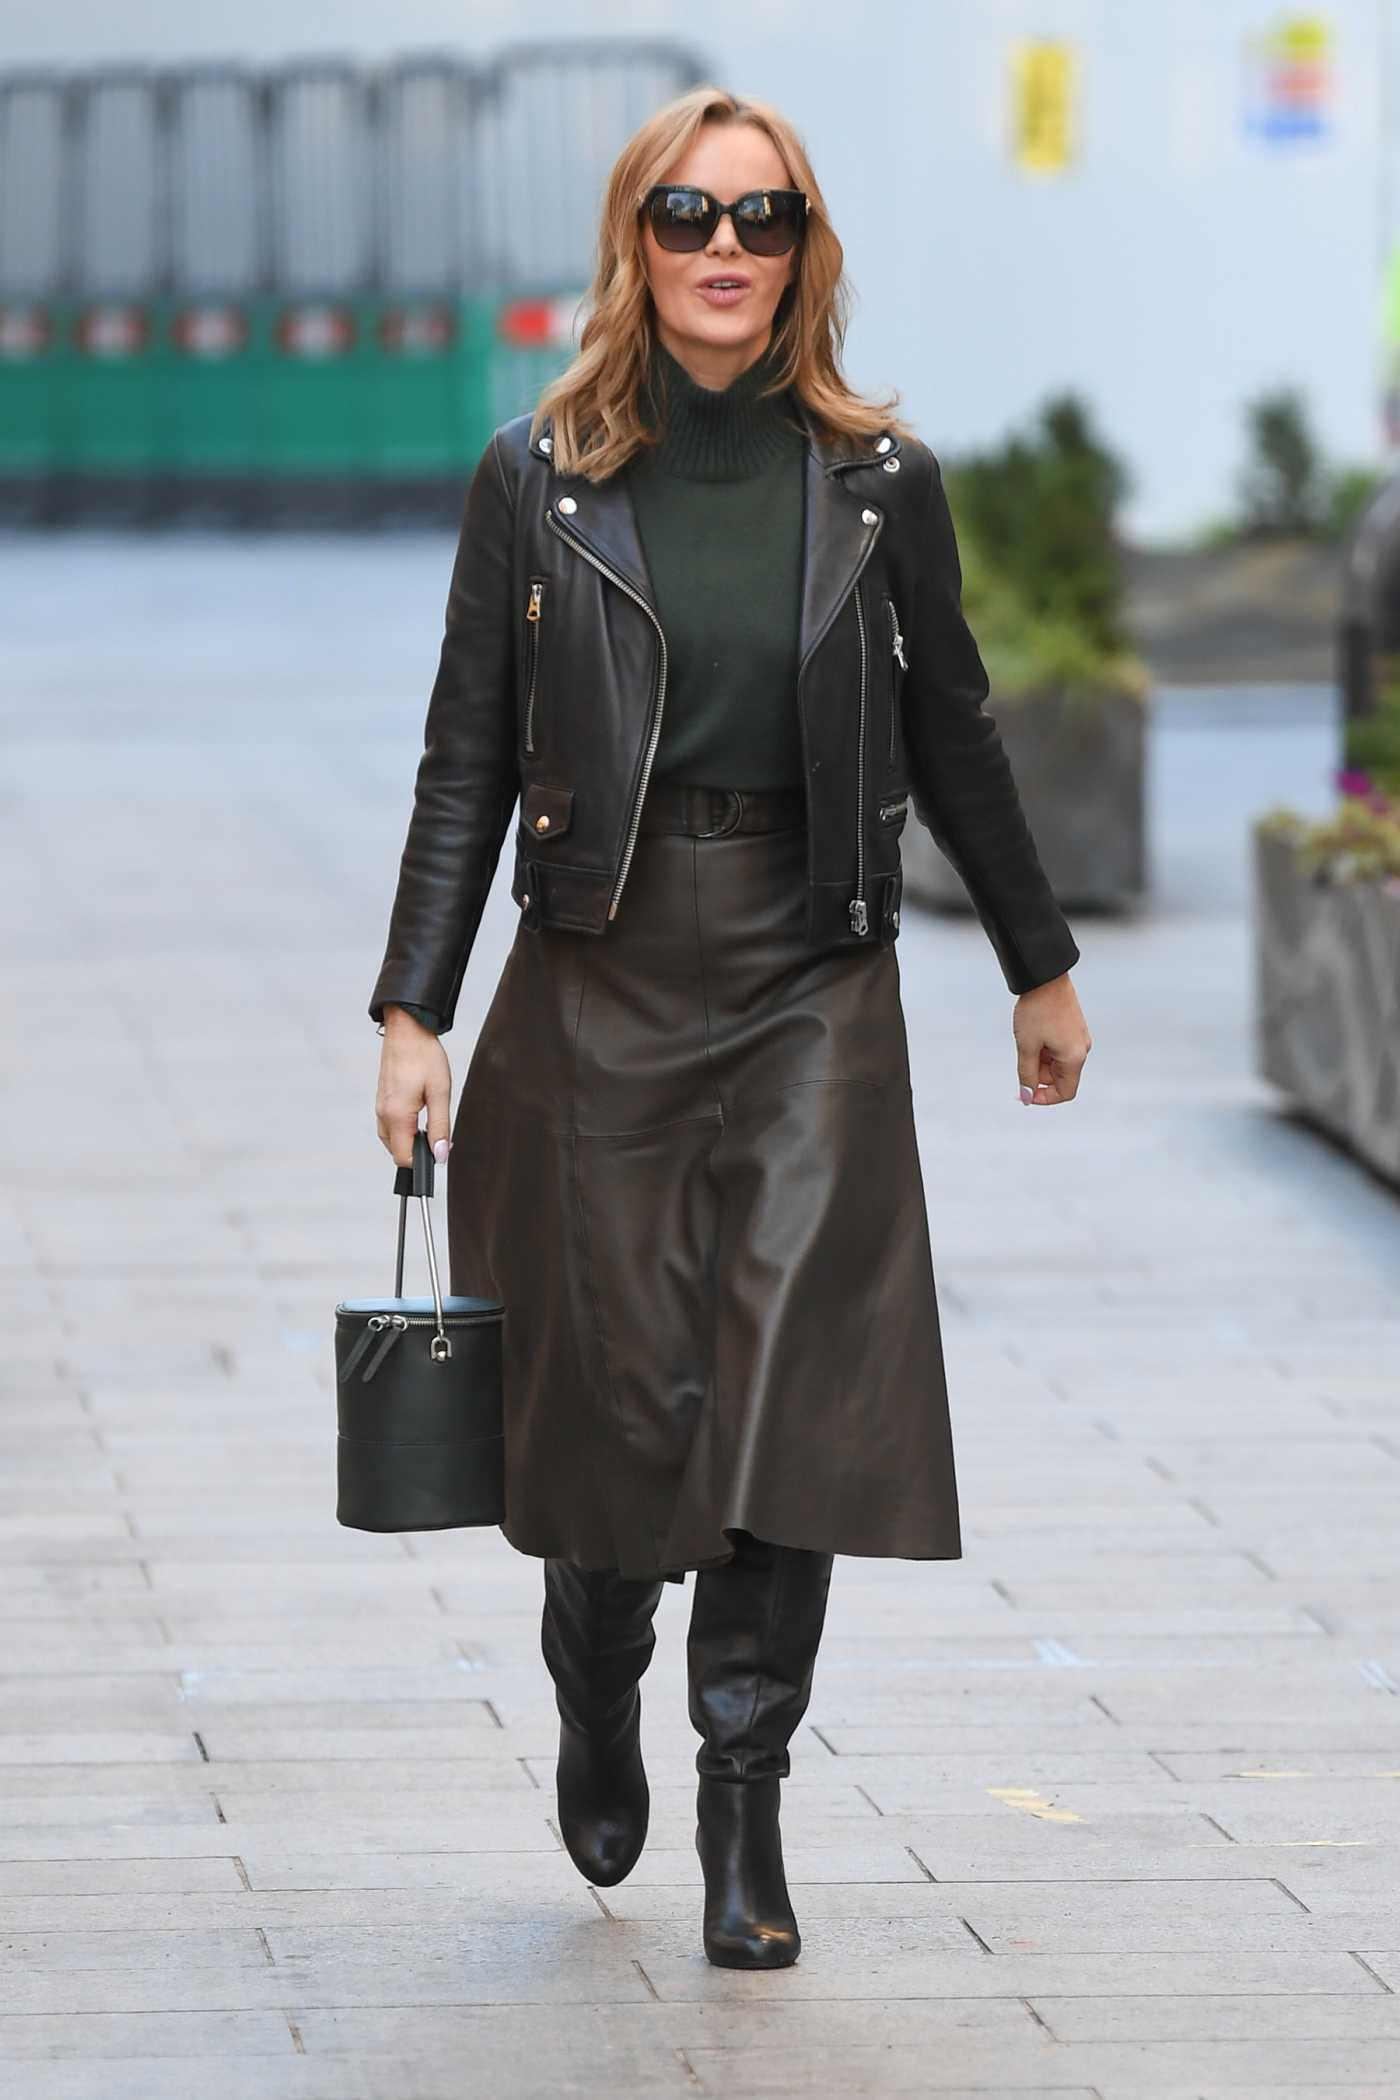 Amanda Holden in a Black Leather Jacket Arrives at the Heart Radio Studios in London 01/25/2021